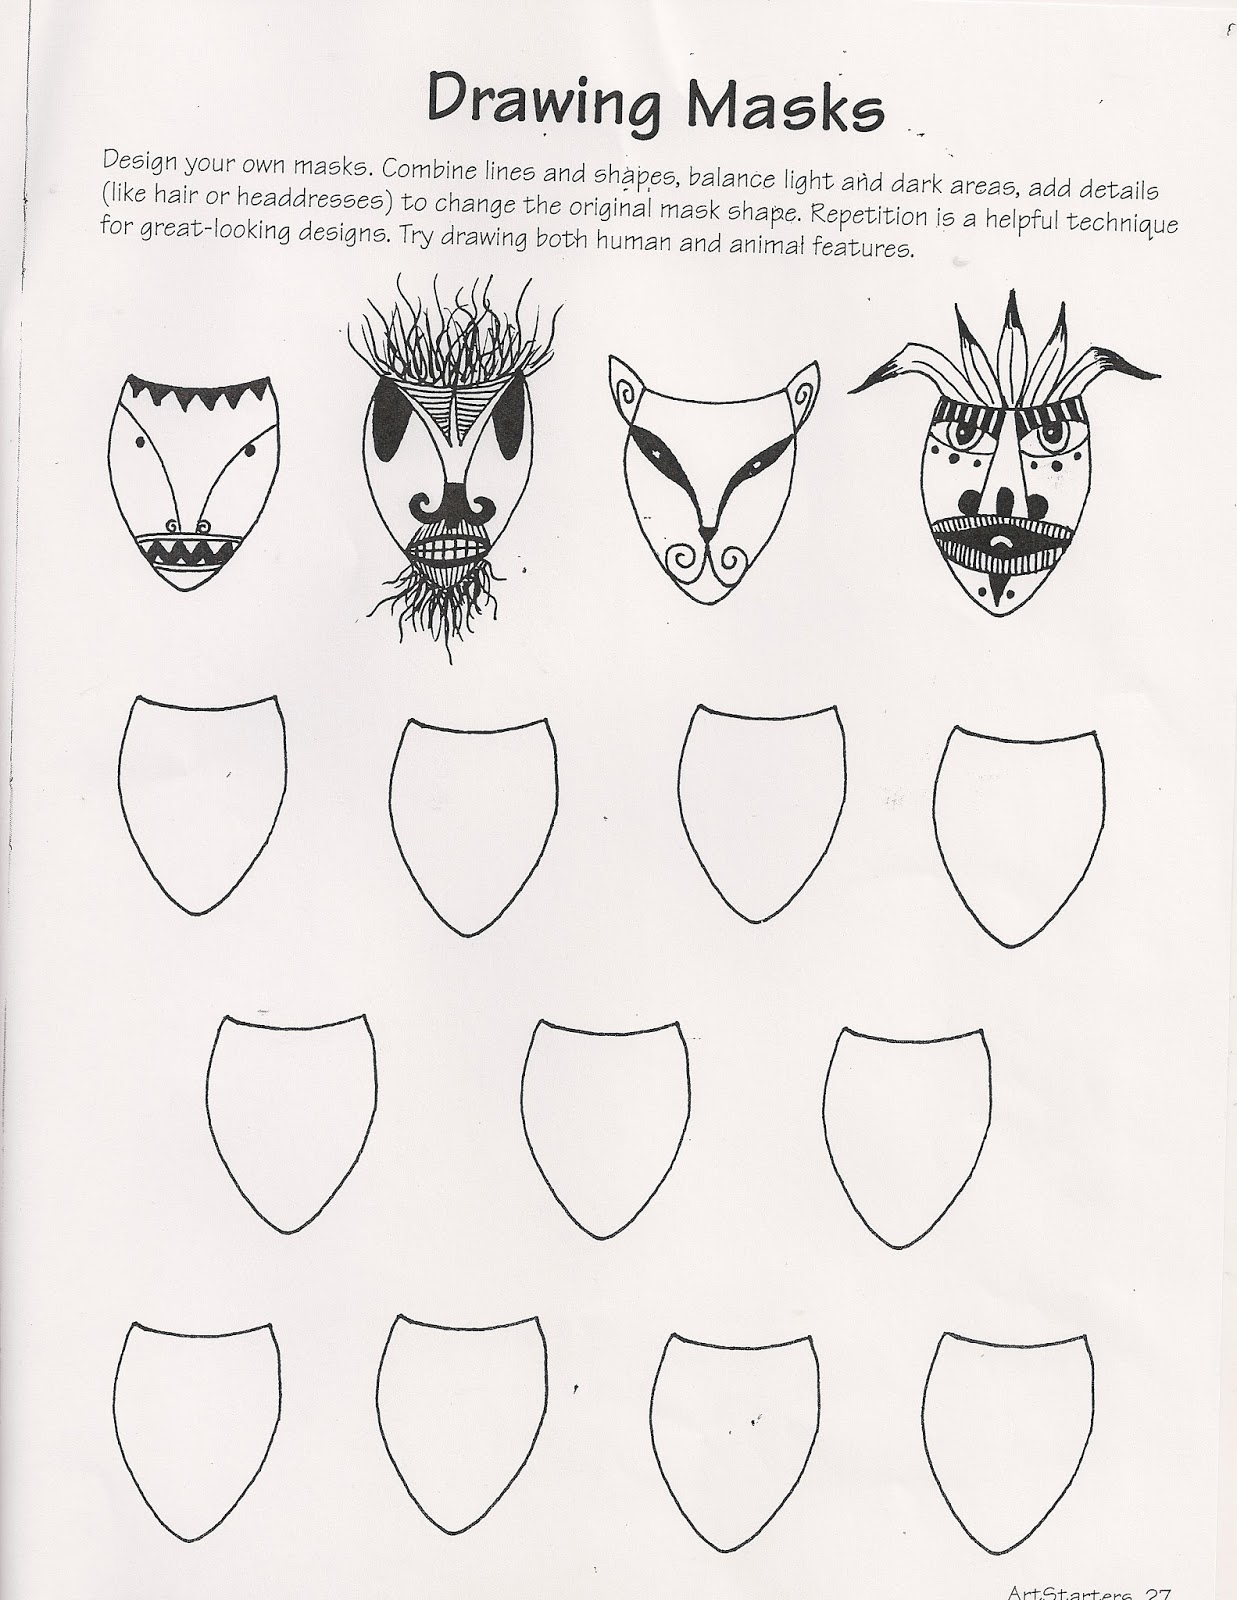 Worksheets Drawing At Getdrawings Free For Personal Use